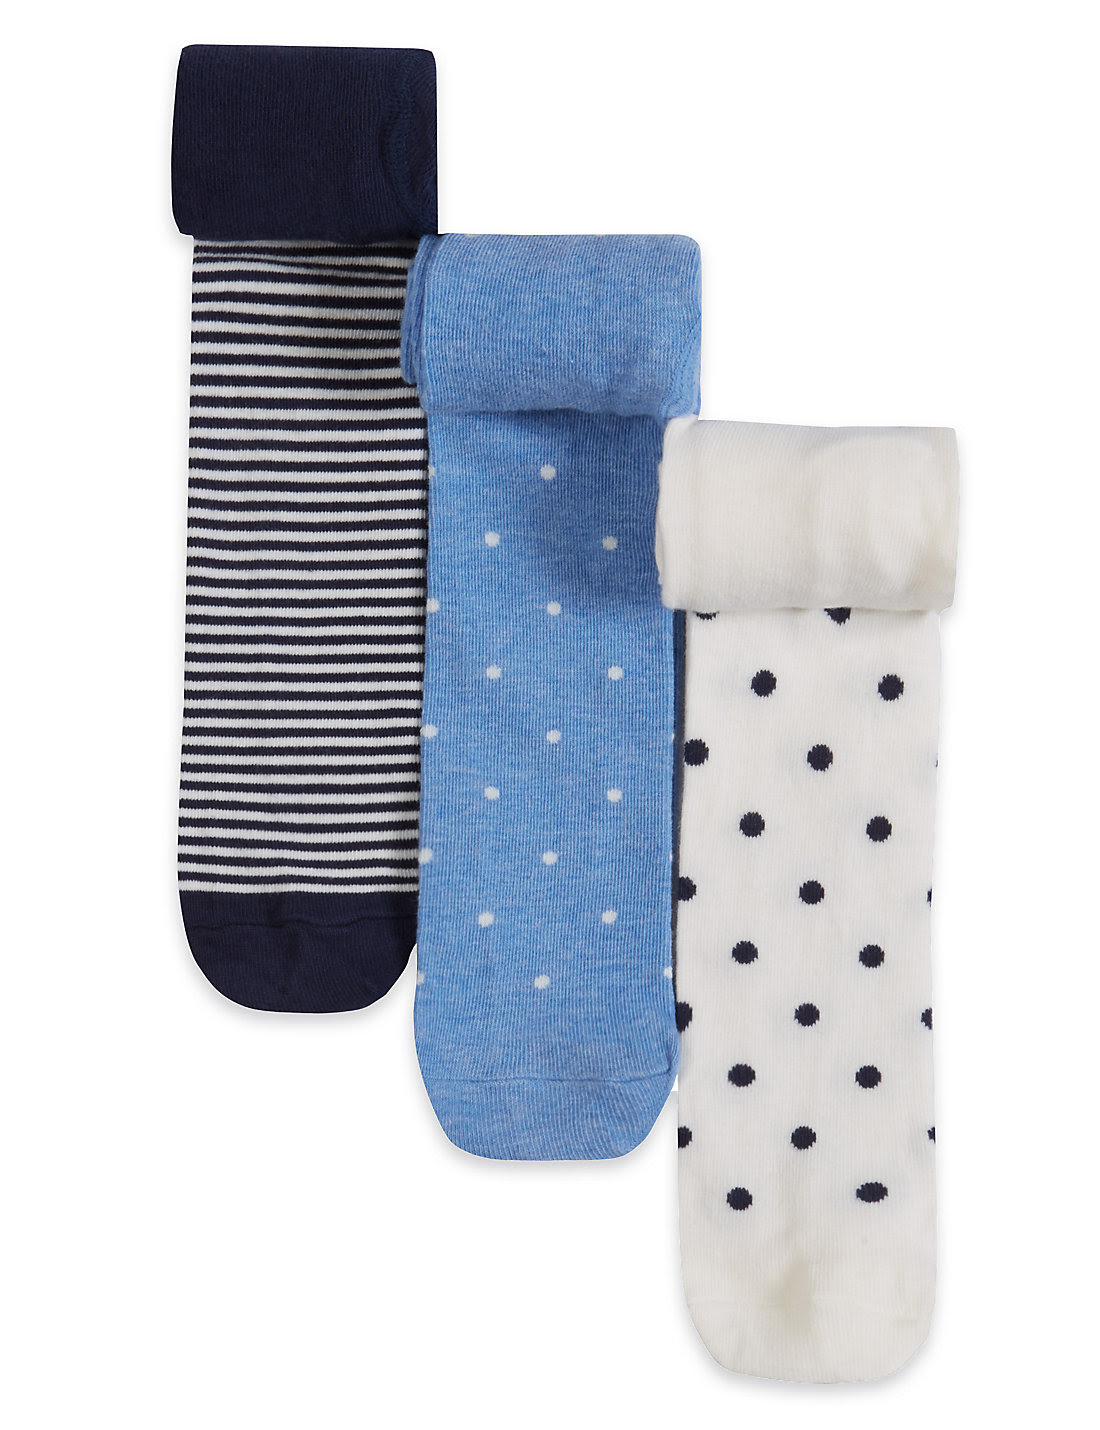 3 Pairs of Cotton Rich Stay Soft Denim Assorted Socks